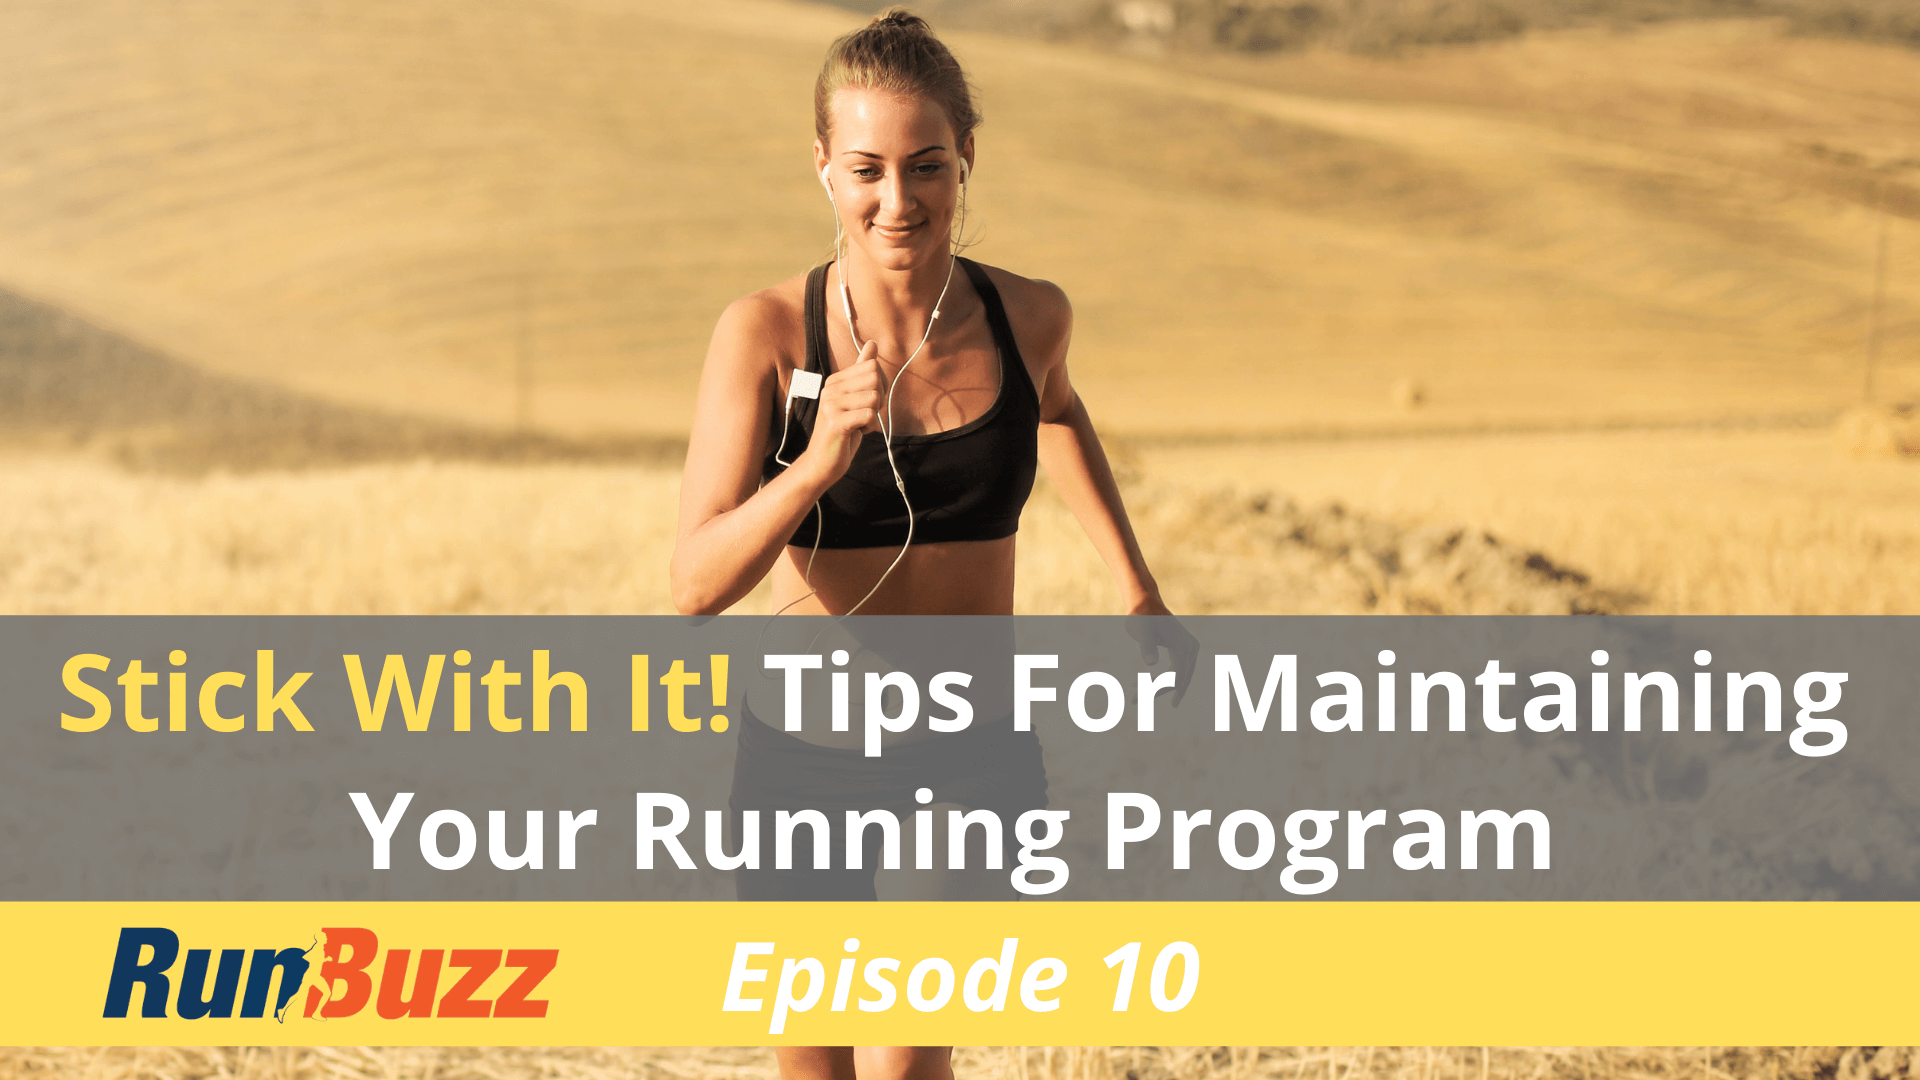 Stick-With-It-Tips-For-Maintaining-Your-Running-Program